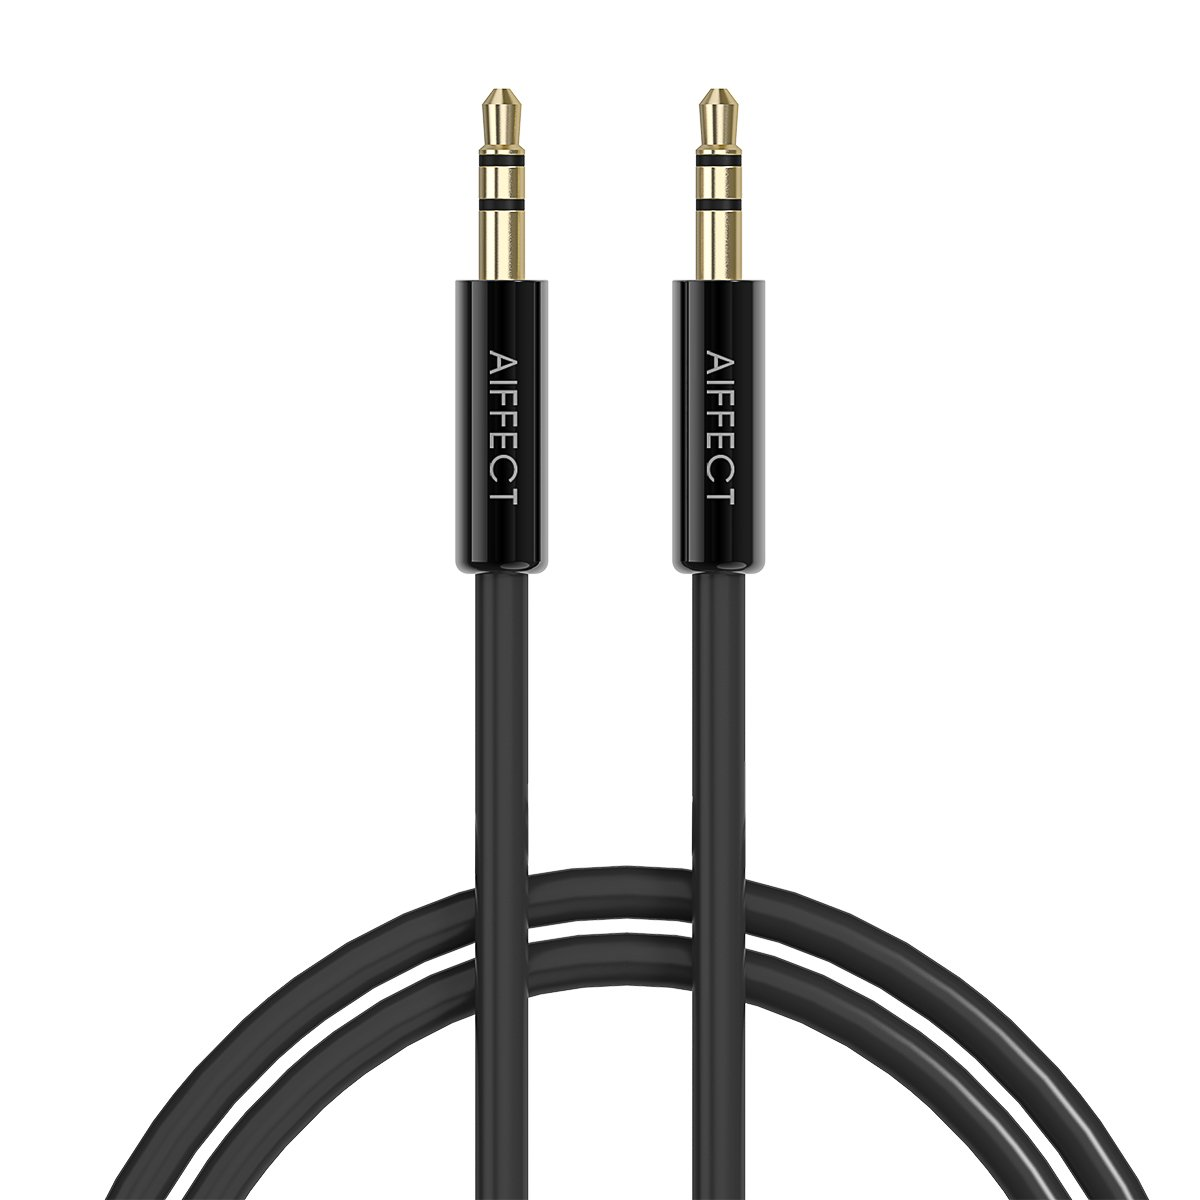 AIFFECT 1.6Ft(0.5m) Tangle-Free Male to Male 3.5mm Auxiliary Audio Cable, Gold Plated, for Apple, Android Smartphones, Tablet and MP3 Players – Black